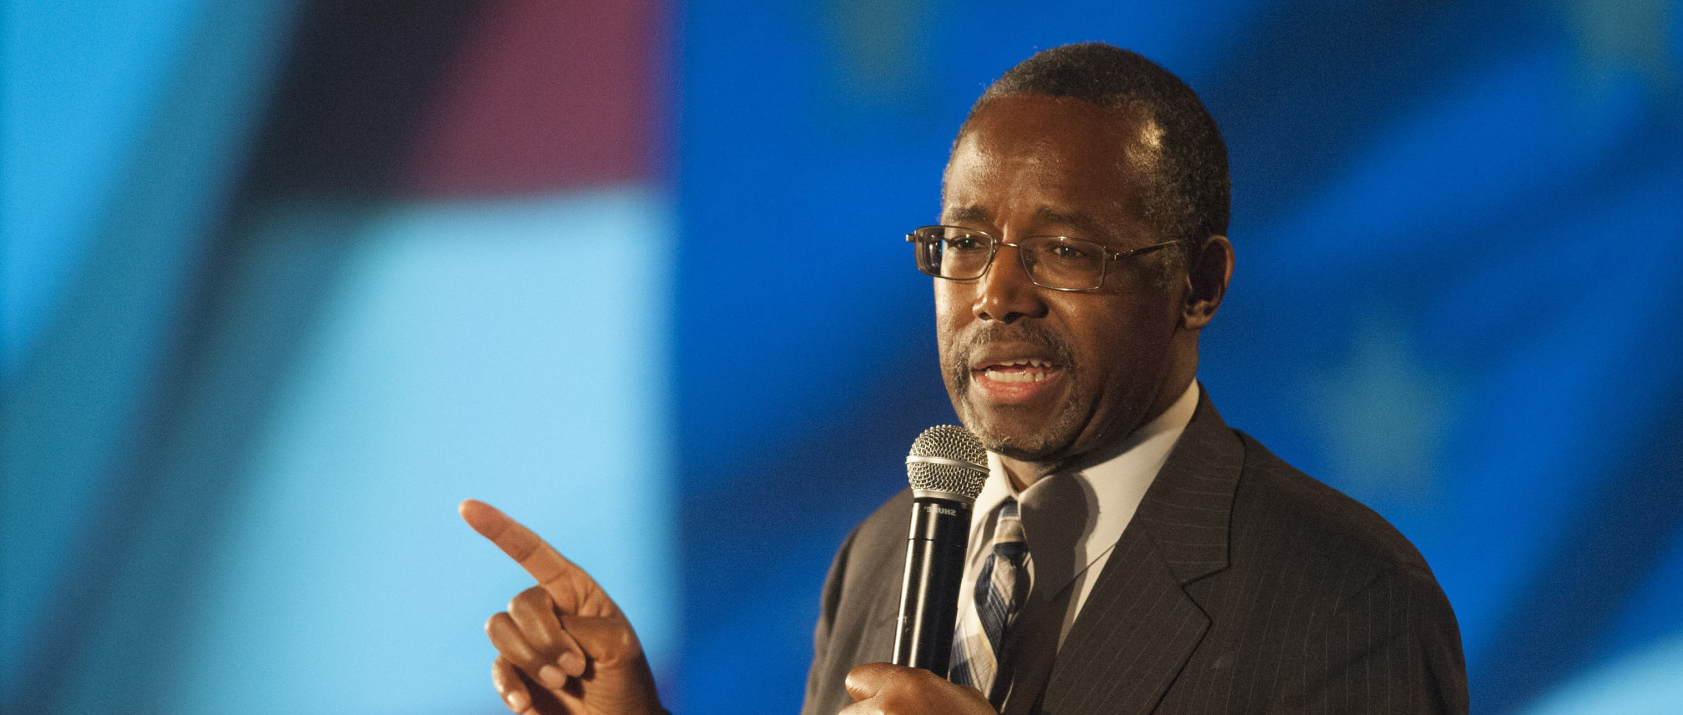 Ben Carson and Mike Huckabee Warn About An EMP Attack In America